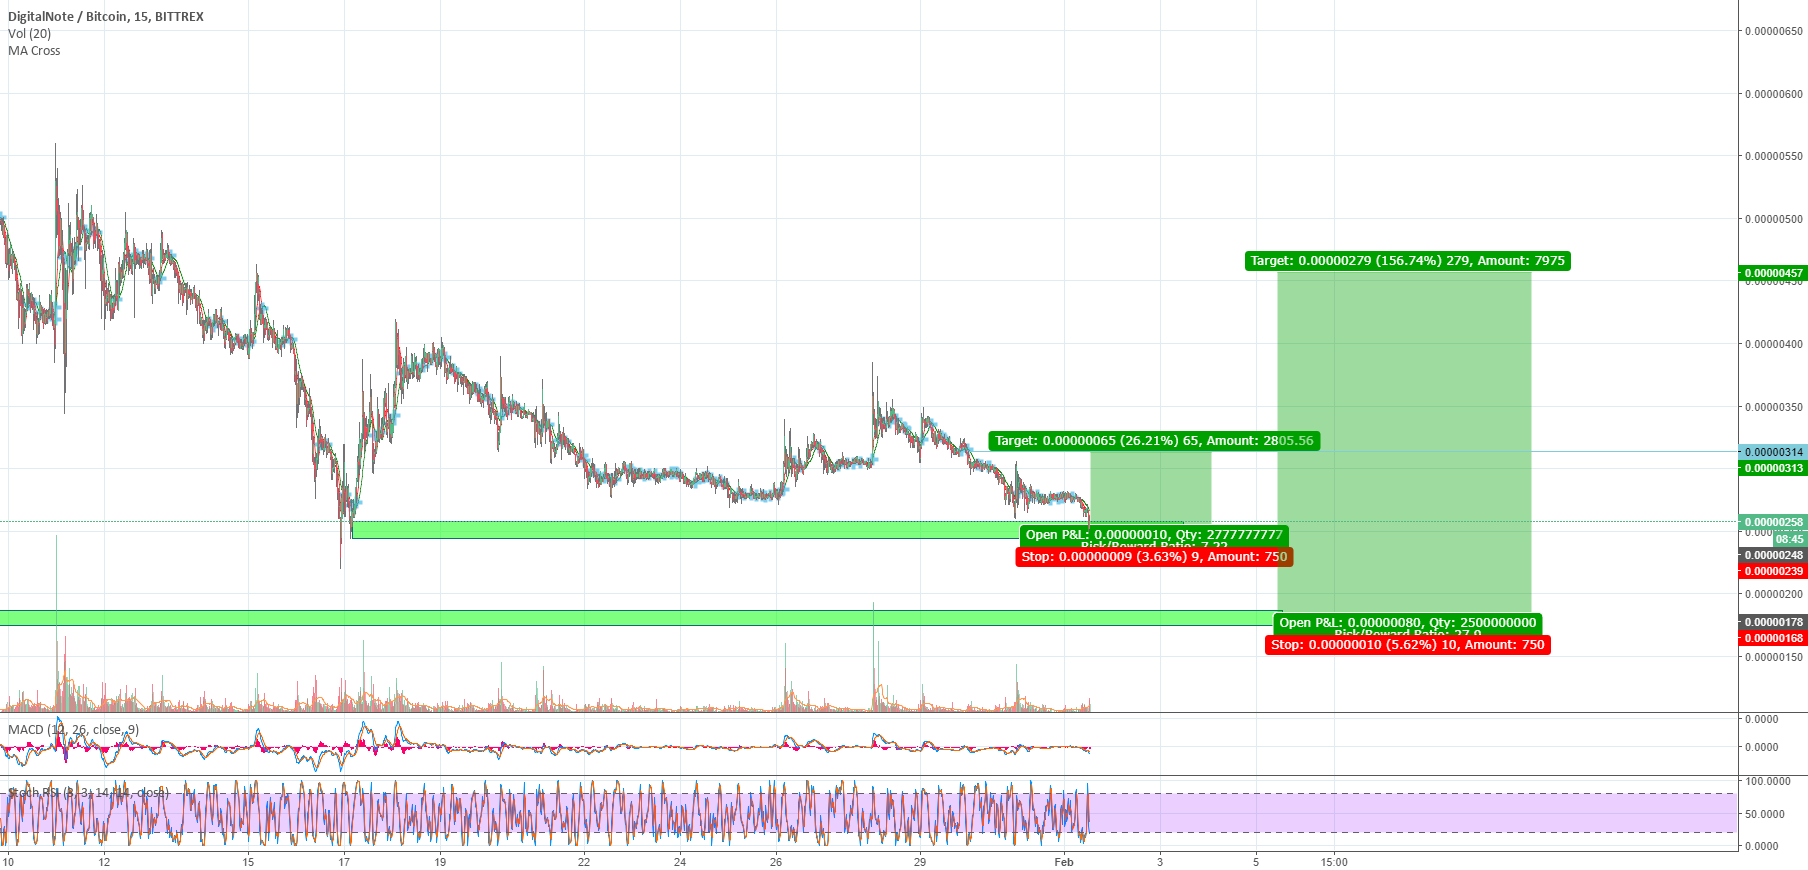 XDN 2 Possible Trades Ideas in 1